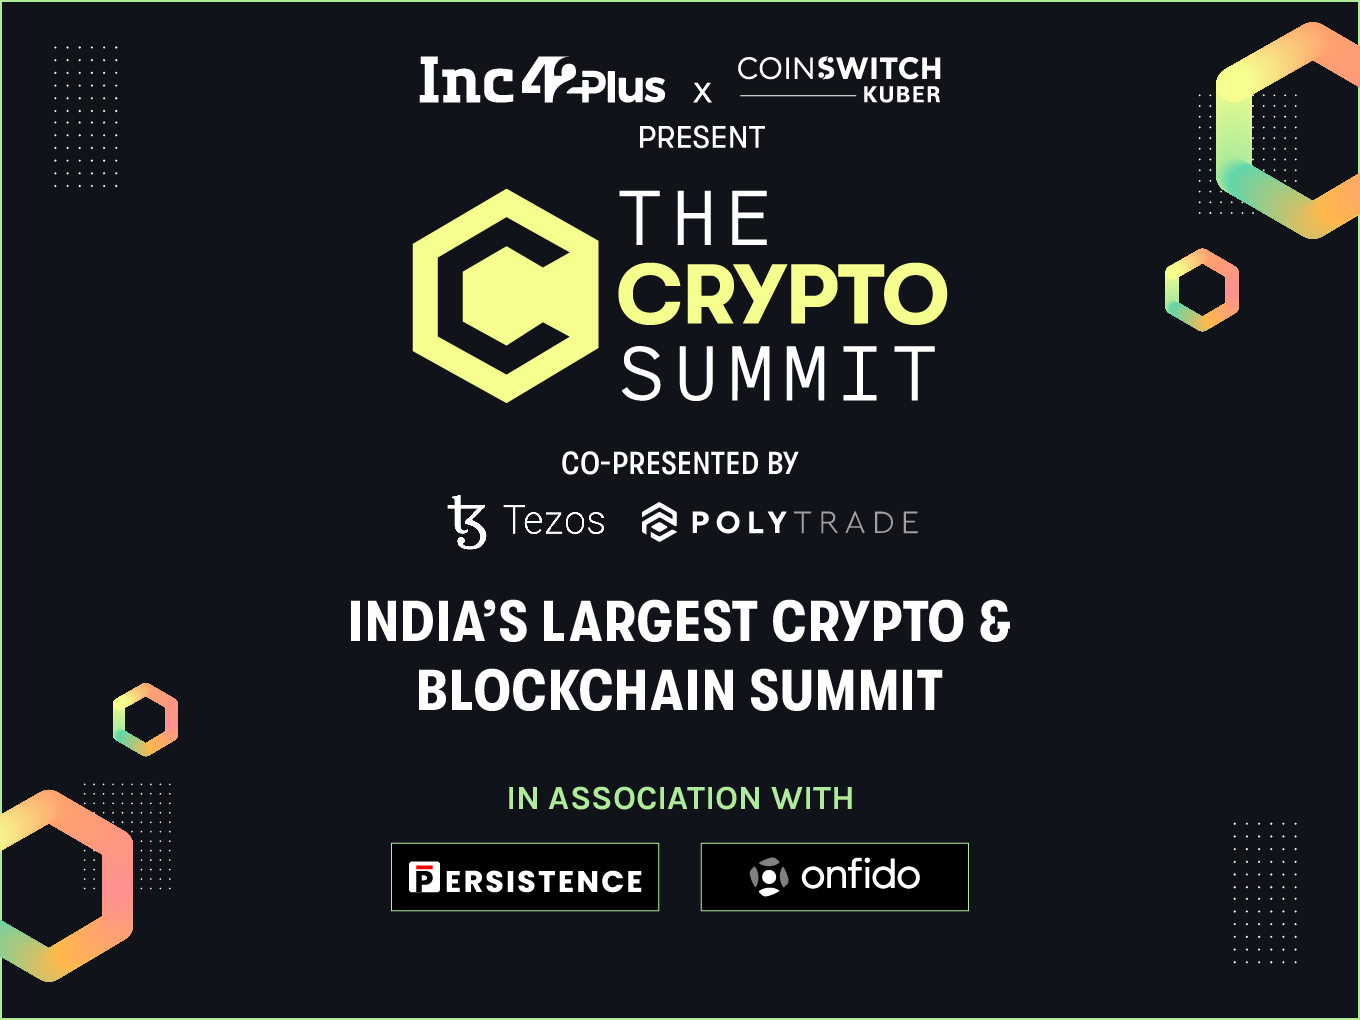 The Crypto Summit: Thank You, Sponsors & Partners, For Supporting The Summit & The Ecosystem!